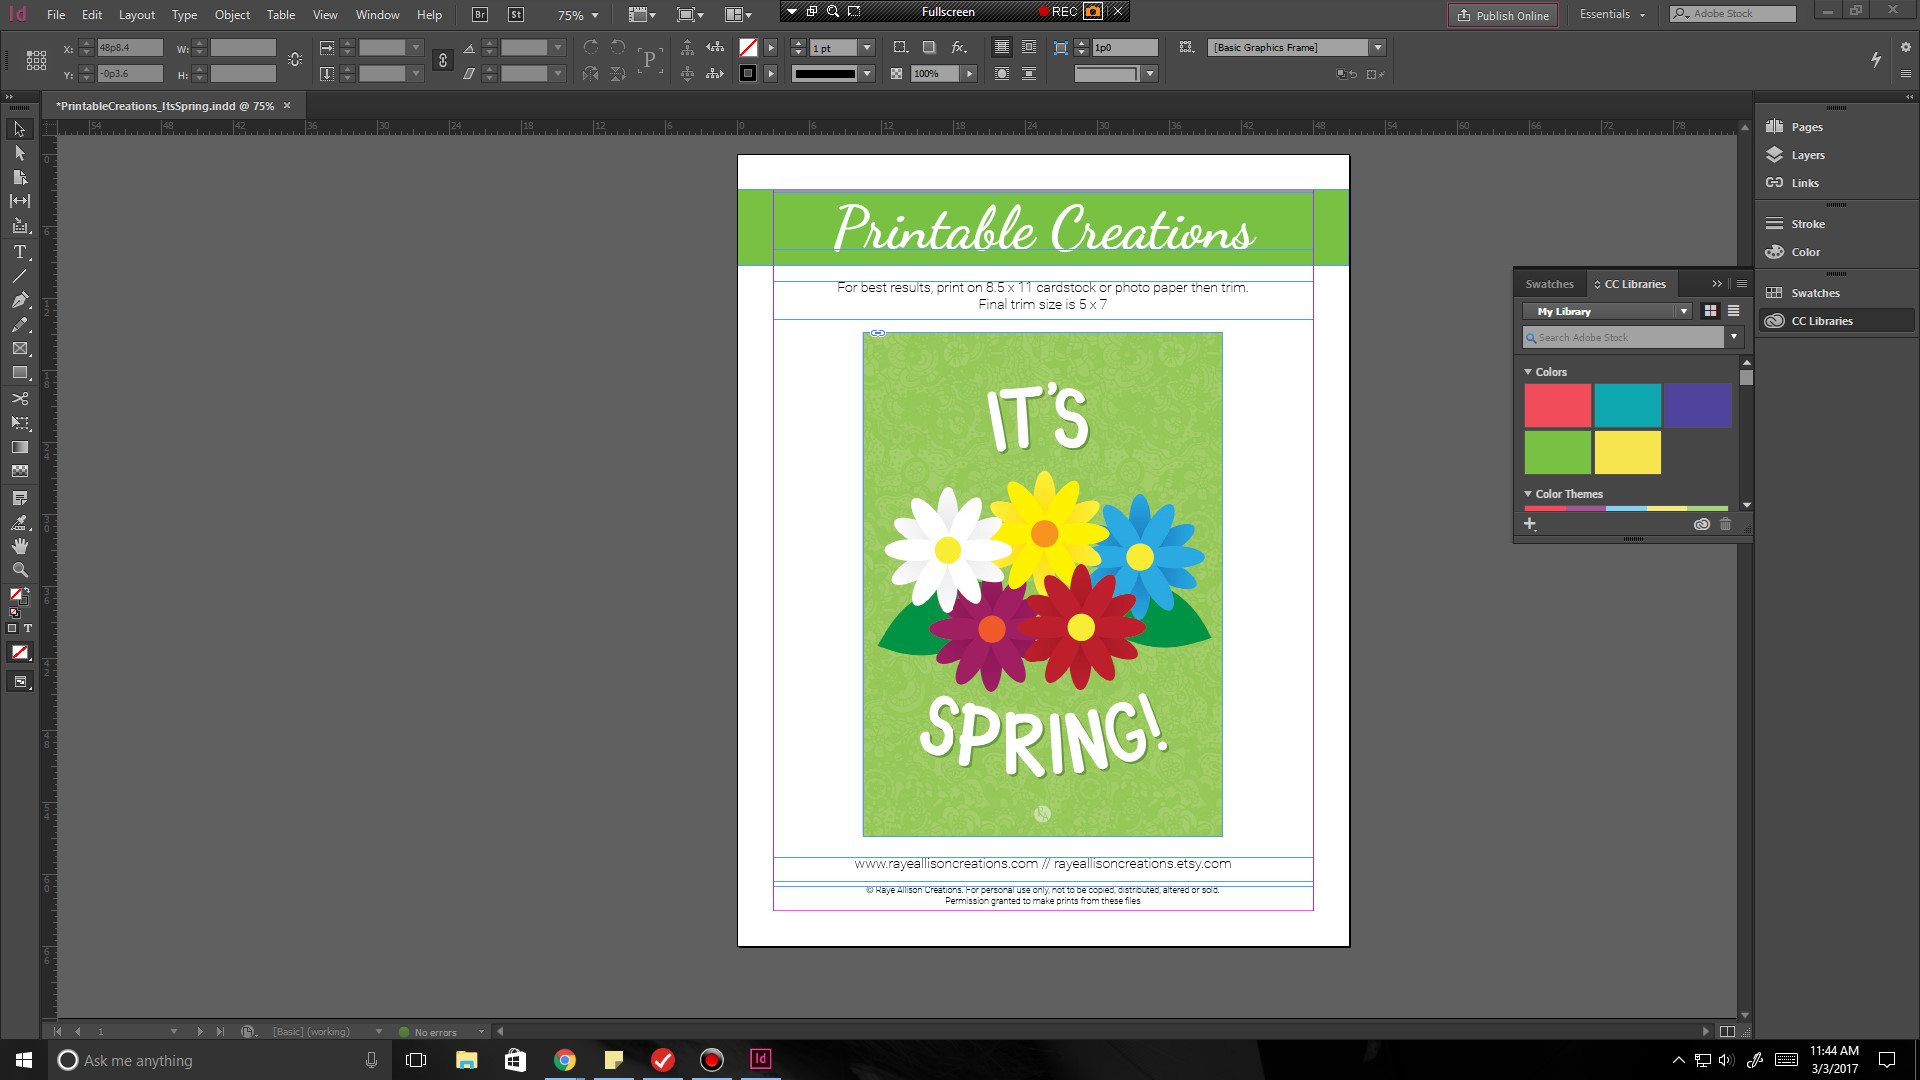 The process for creating my Printable Creations from start to finish!